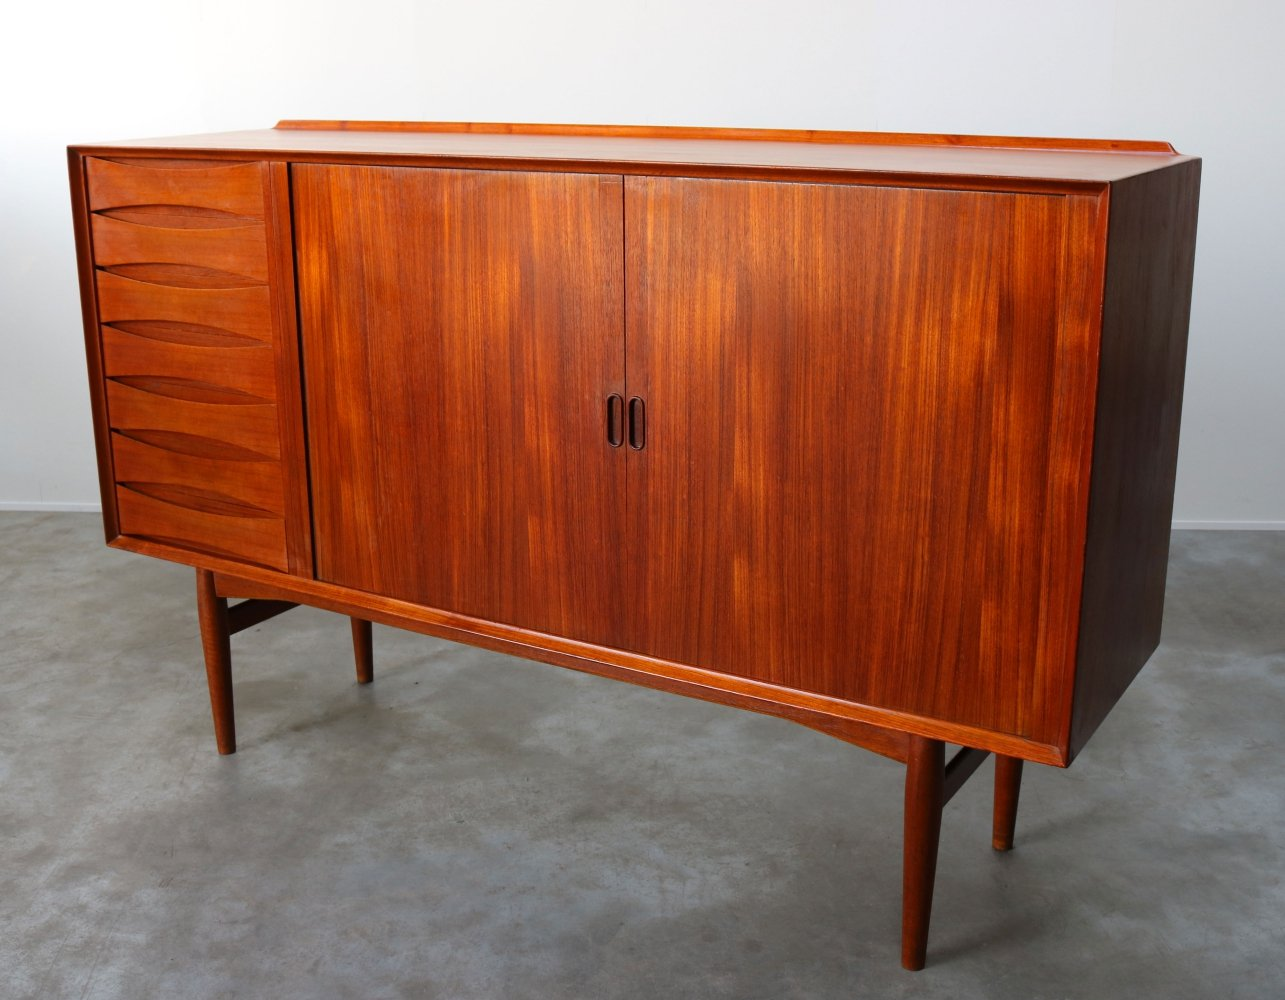 Danish design Highboard / cabinet model: OS63 by Arne Vodder for Sibast, 1950